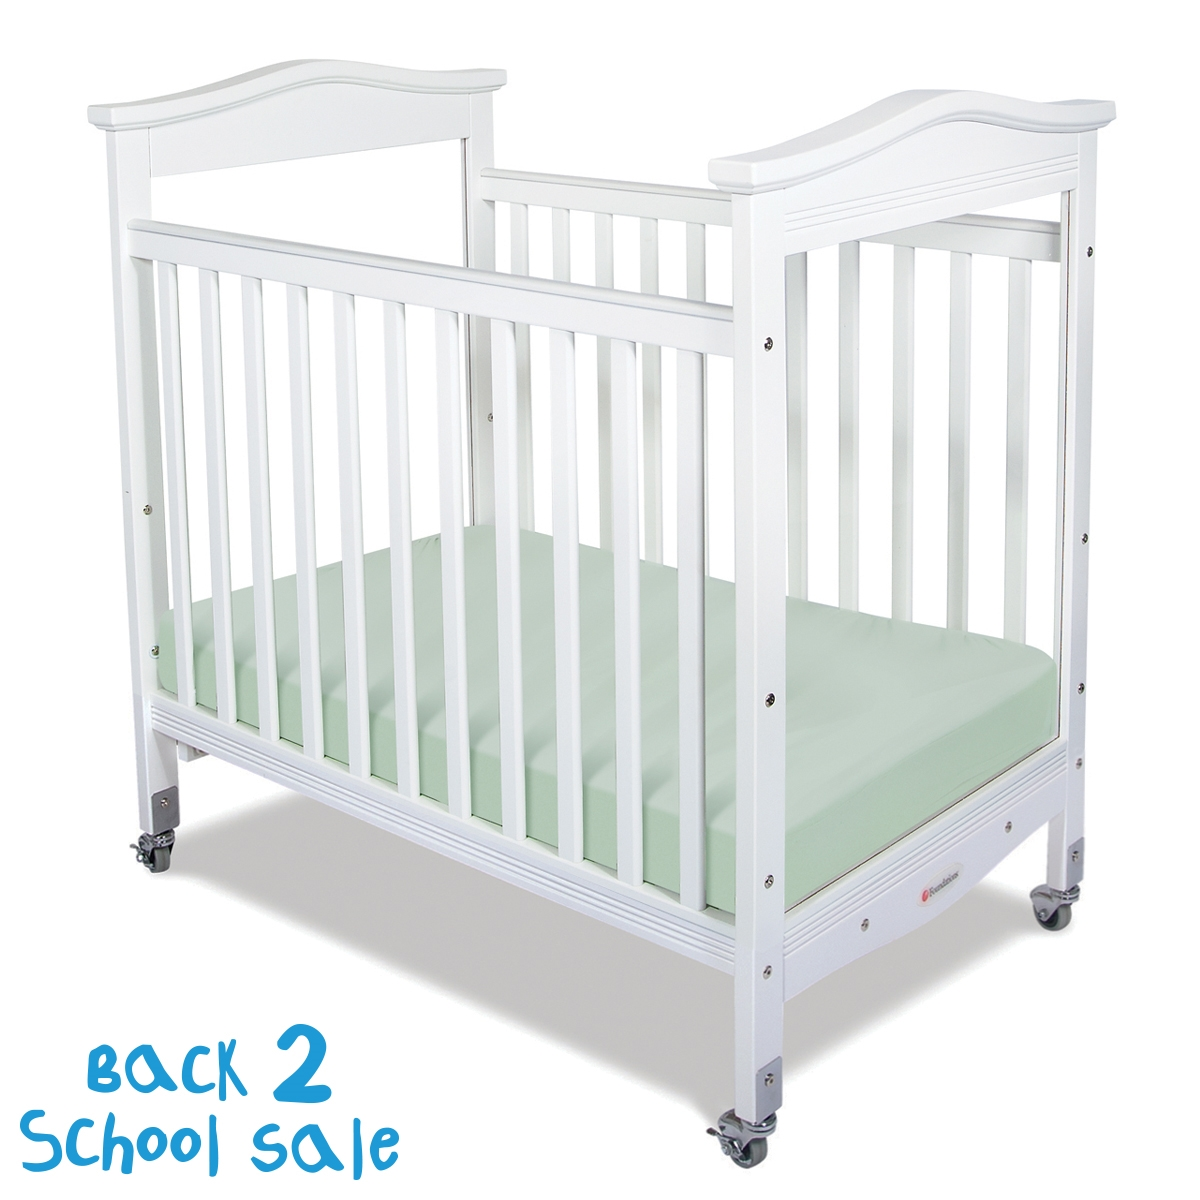 Biltmore Compact Fixed Side Crib, Clearview, White